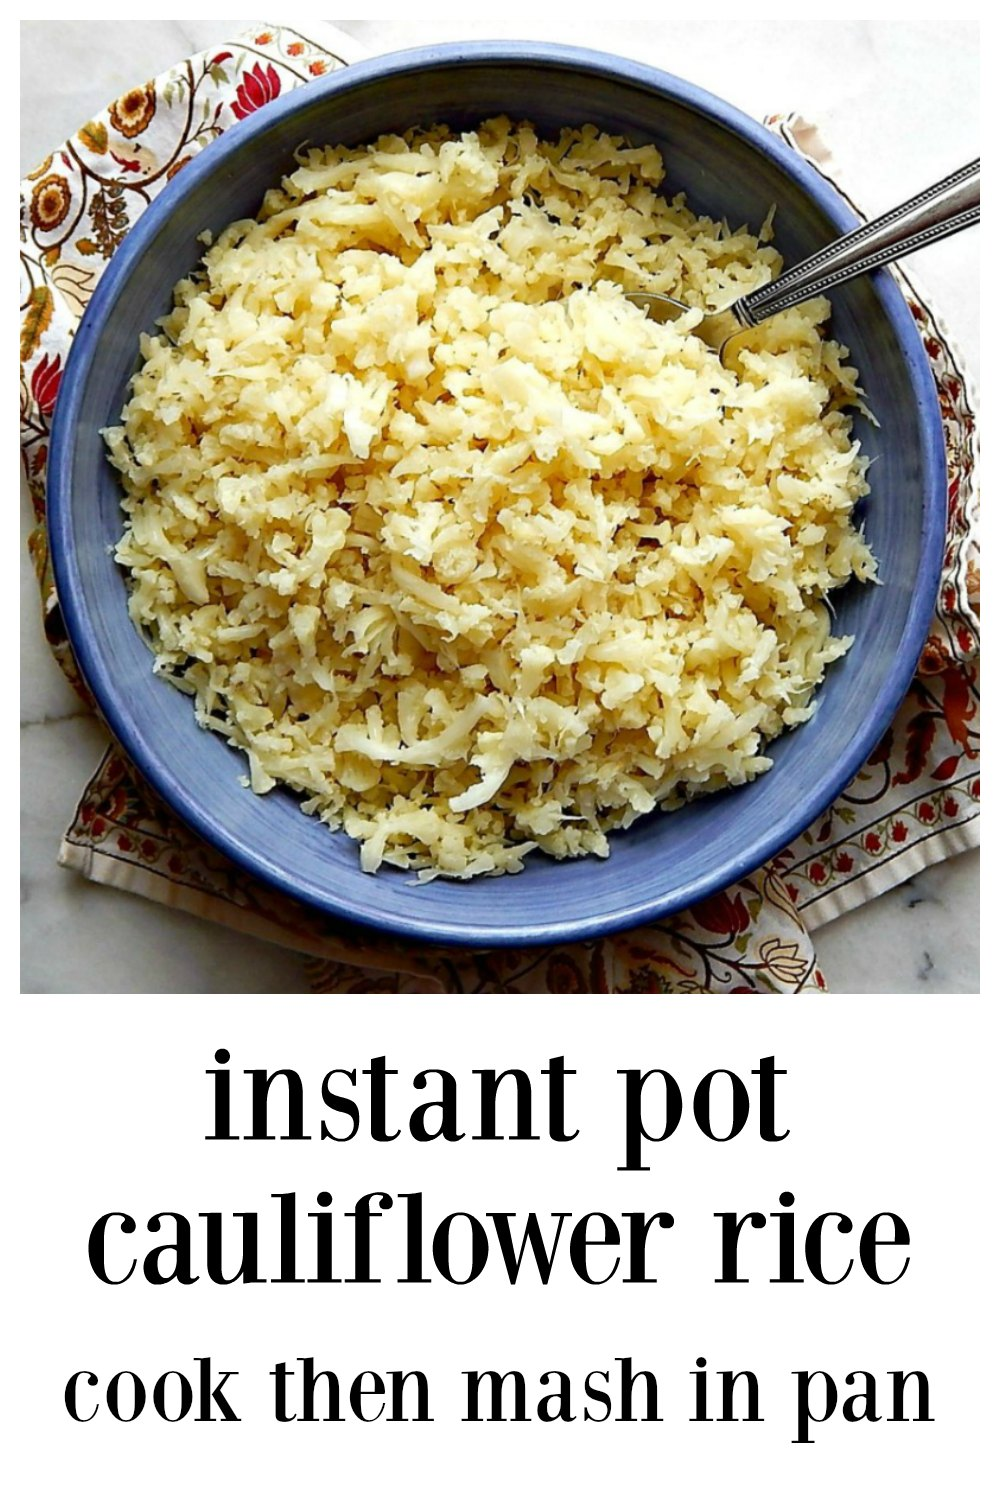 The Perfect & Easiest One Pot Instant Pot Mash in the pan Cauliflower Rice. No food processor needed! Minutes to make! #InstantPotCauliflowerRice #InstantPotEasyCauliflowerRice